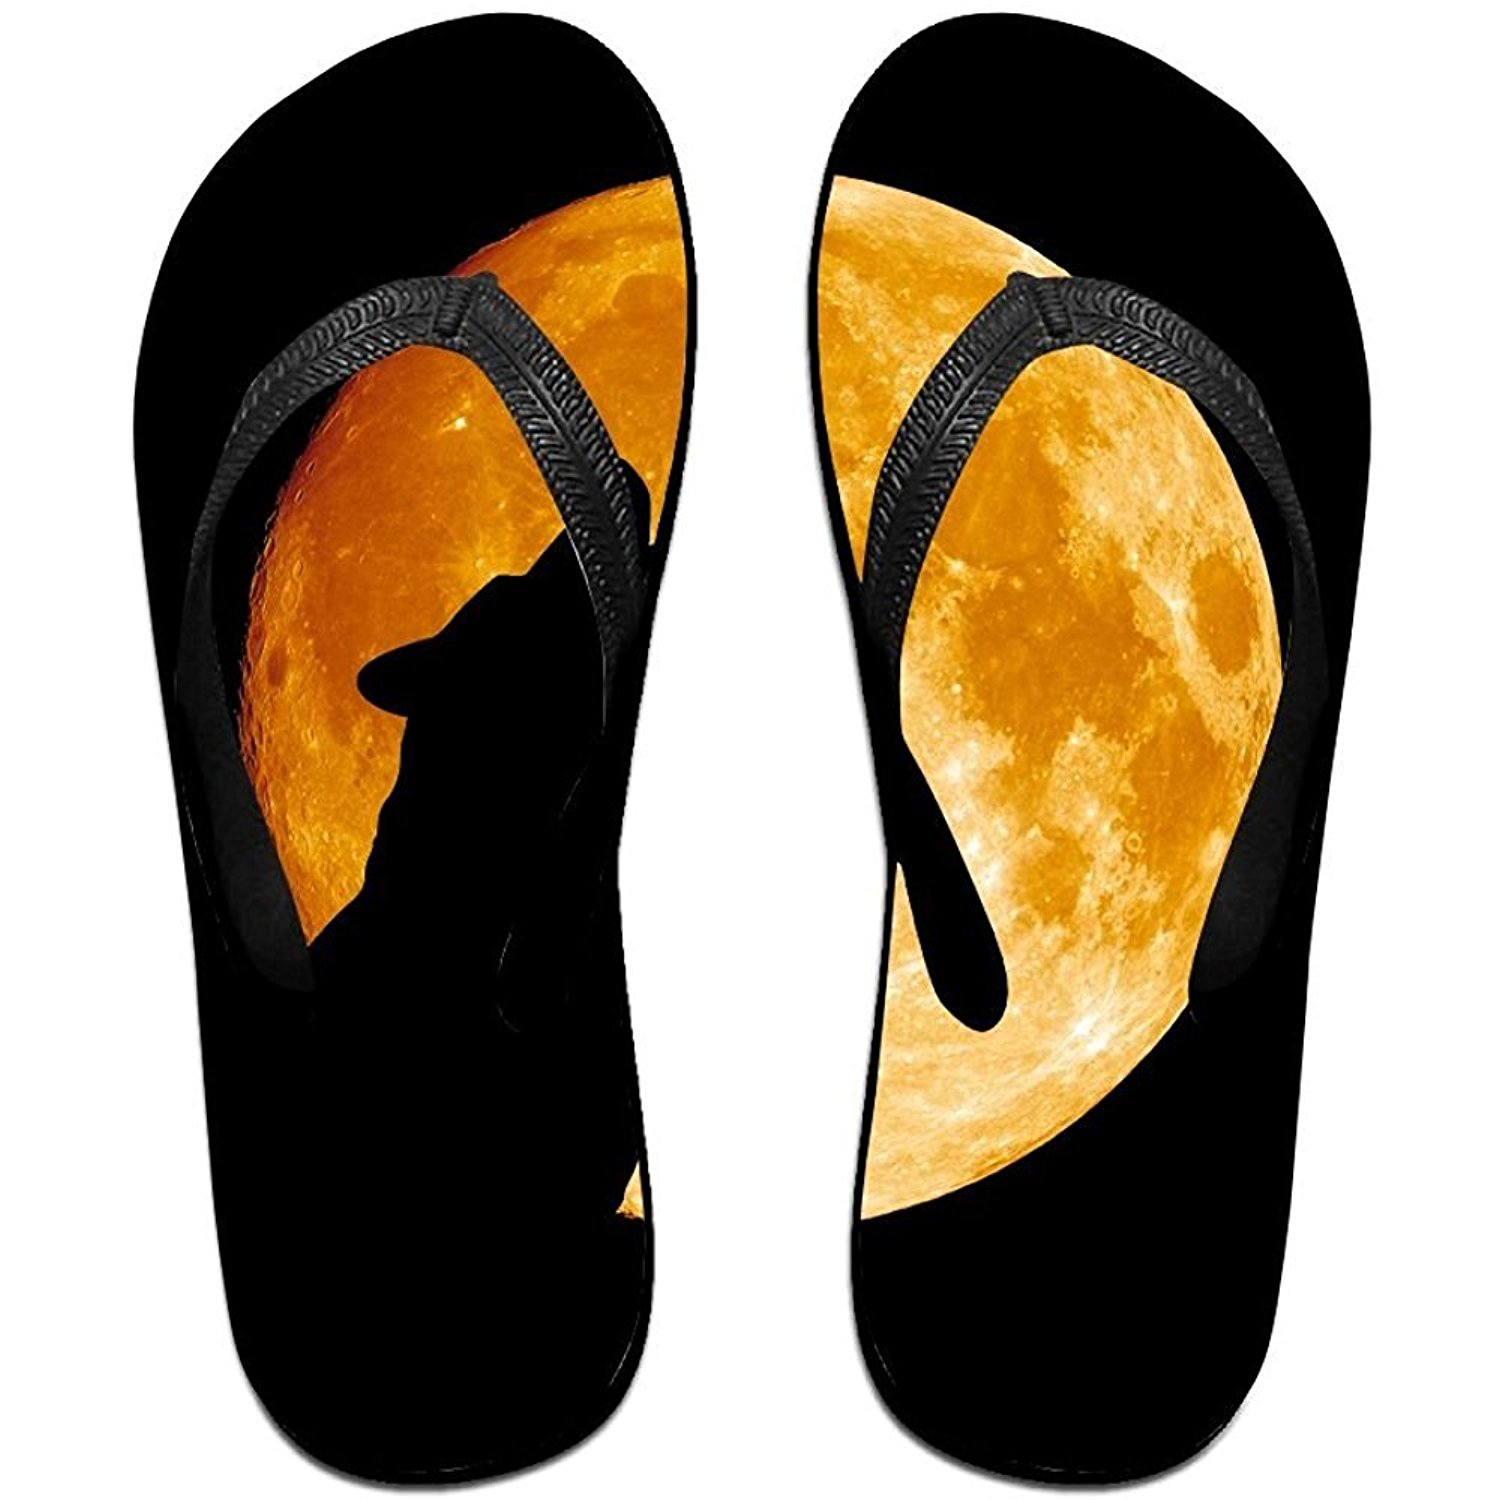 79a489a6434 Get Quotations · Starwshton Unisex Wolf Howling At The Moo Summer Beach  Herringbone Shoes Sandals Slipper Indoor   Outdoor